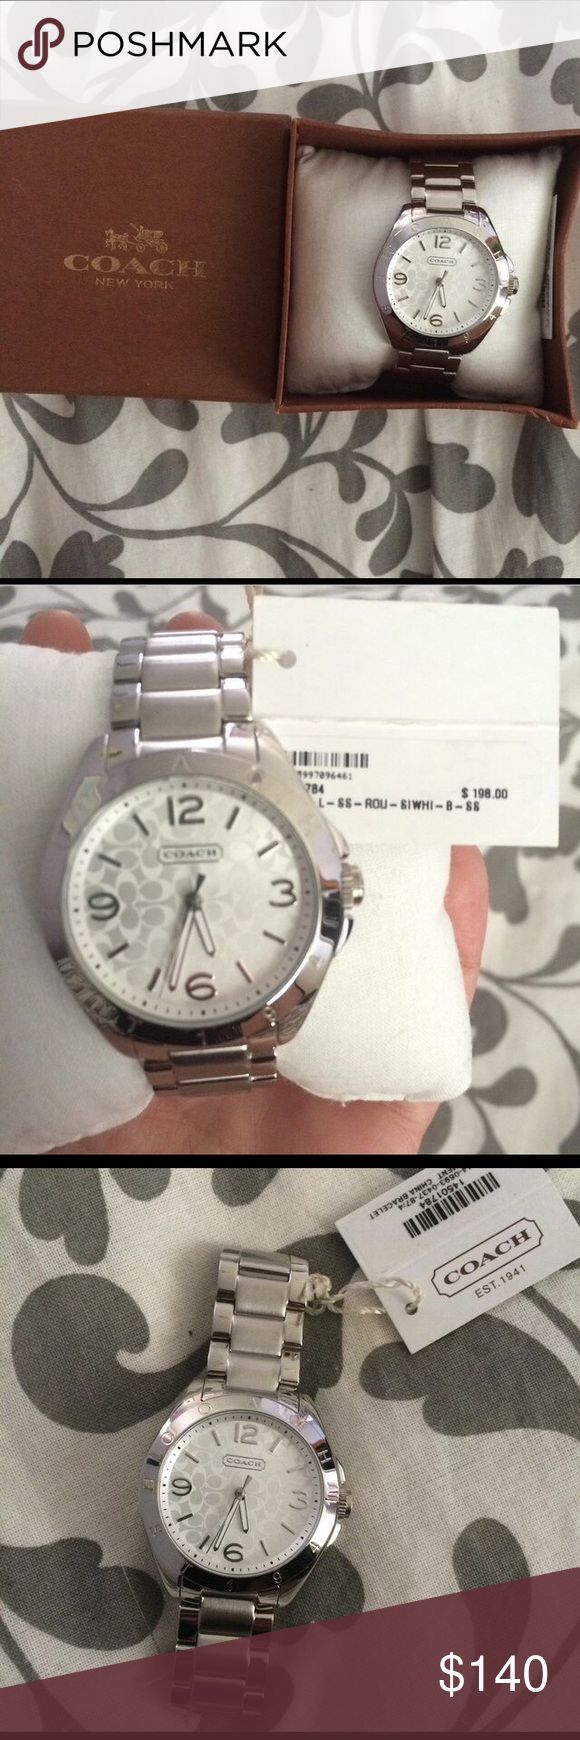 Authentic Coach silver watch. Brand new, in box. Beautiful Coach women's watch with price tag still on (original $198)! Comes with user manual, and original watch pillow. May need new batteries, but aside from that is brand new, mint condition. Has never been worn. Coach Jewelry